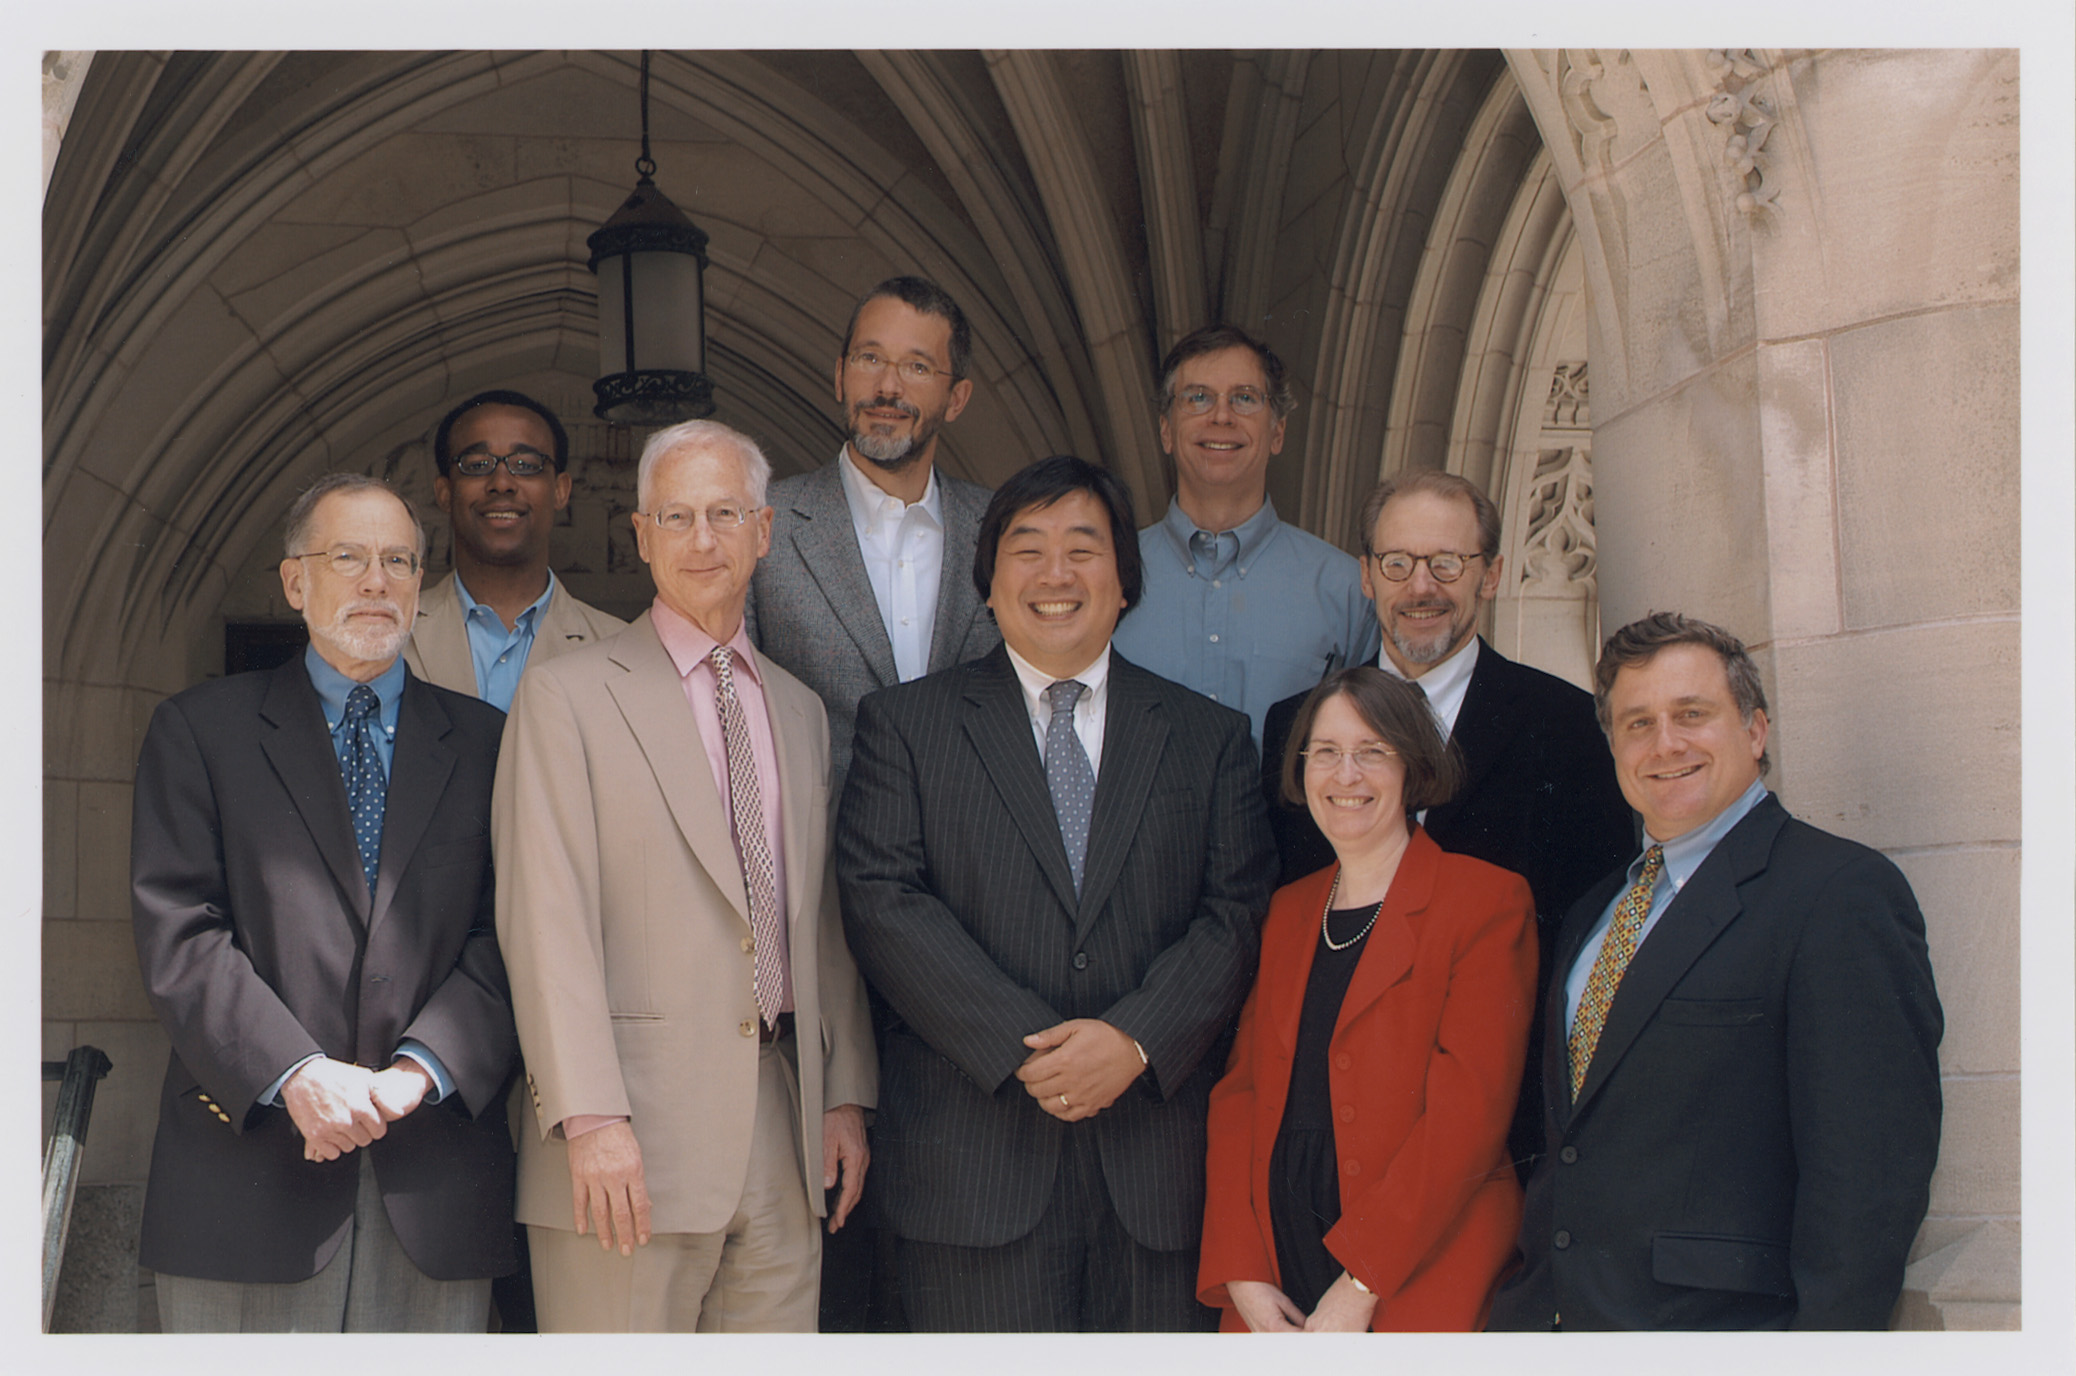 YLS Dean Harold Hongju Koh and YLS Prof. and Center Dir. Roberta Romano '80 (Center) and YLS Profs. Al Klevorick, Richard Brooks, Alan Schwartz '64, Ian Ayres '86, John Donohue, Henry Hansmann '74, and Jonathan Macey '82 (From Left)